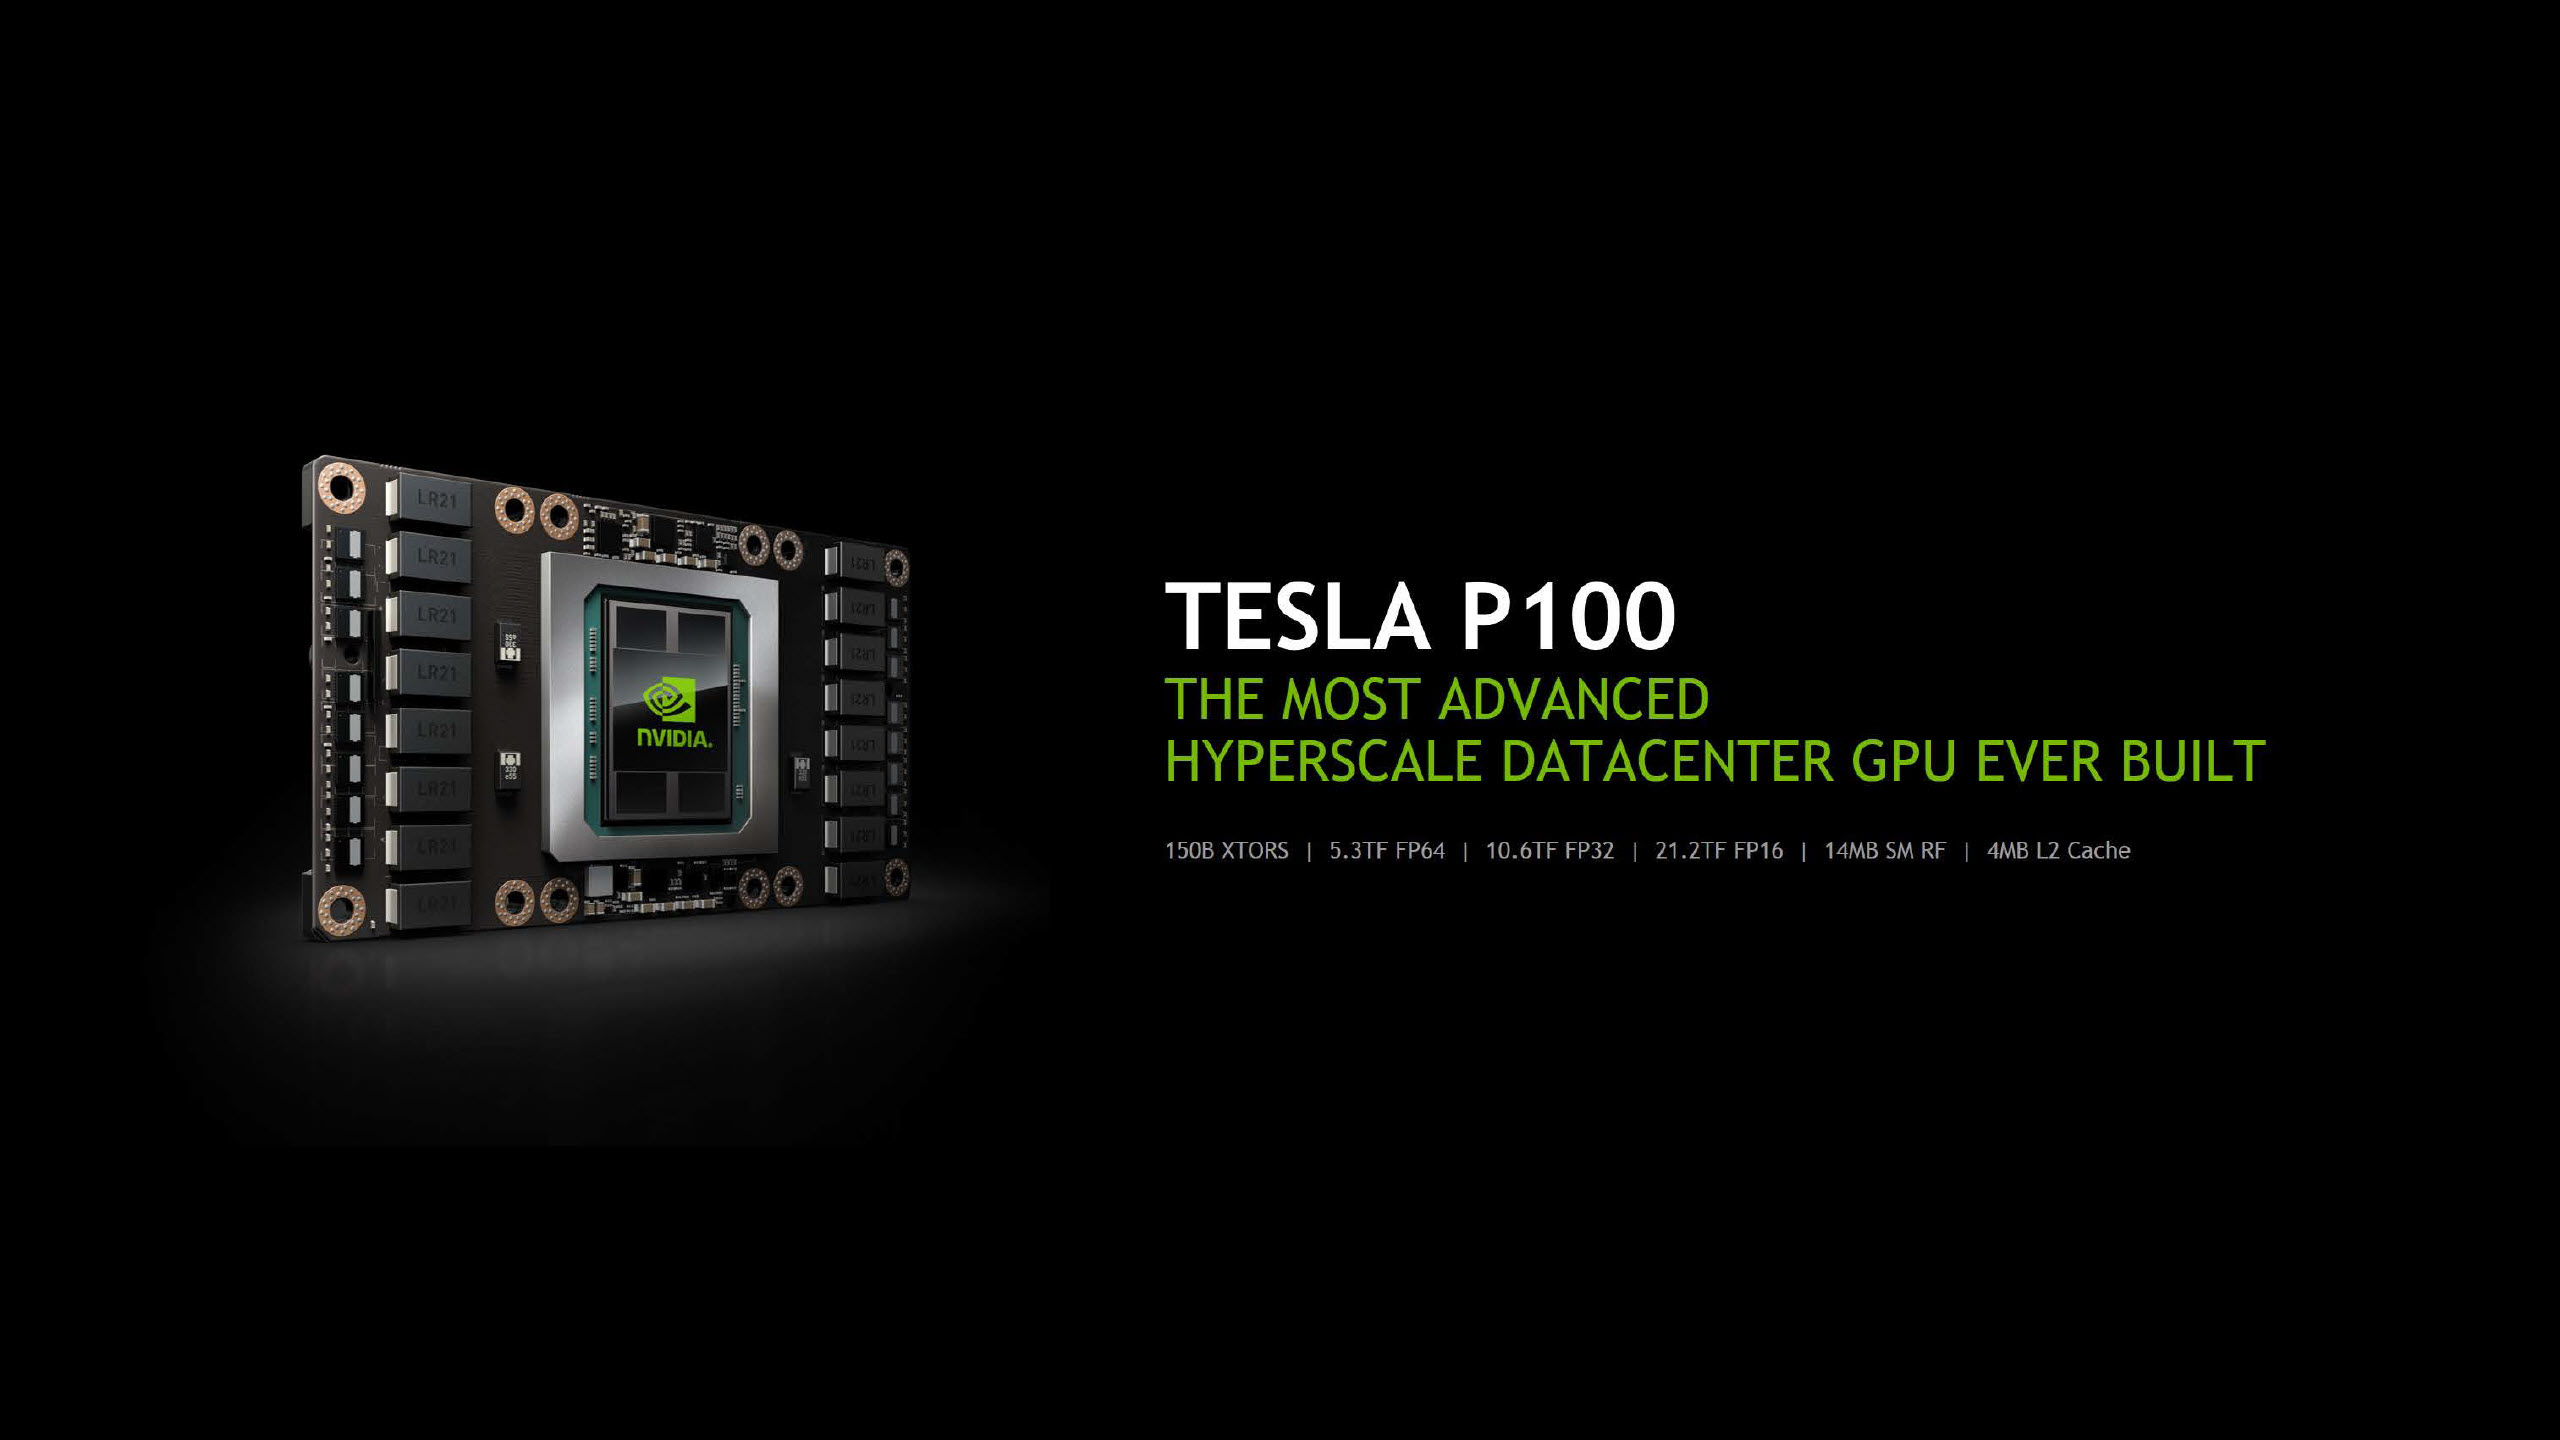 Innovative Quotes Wallpapers Nvidia Announces The Hgx 1 Hyperscale Gpu Accelerator And